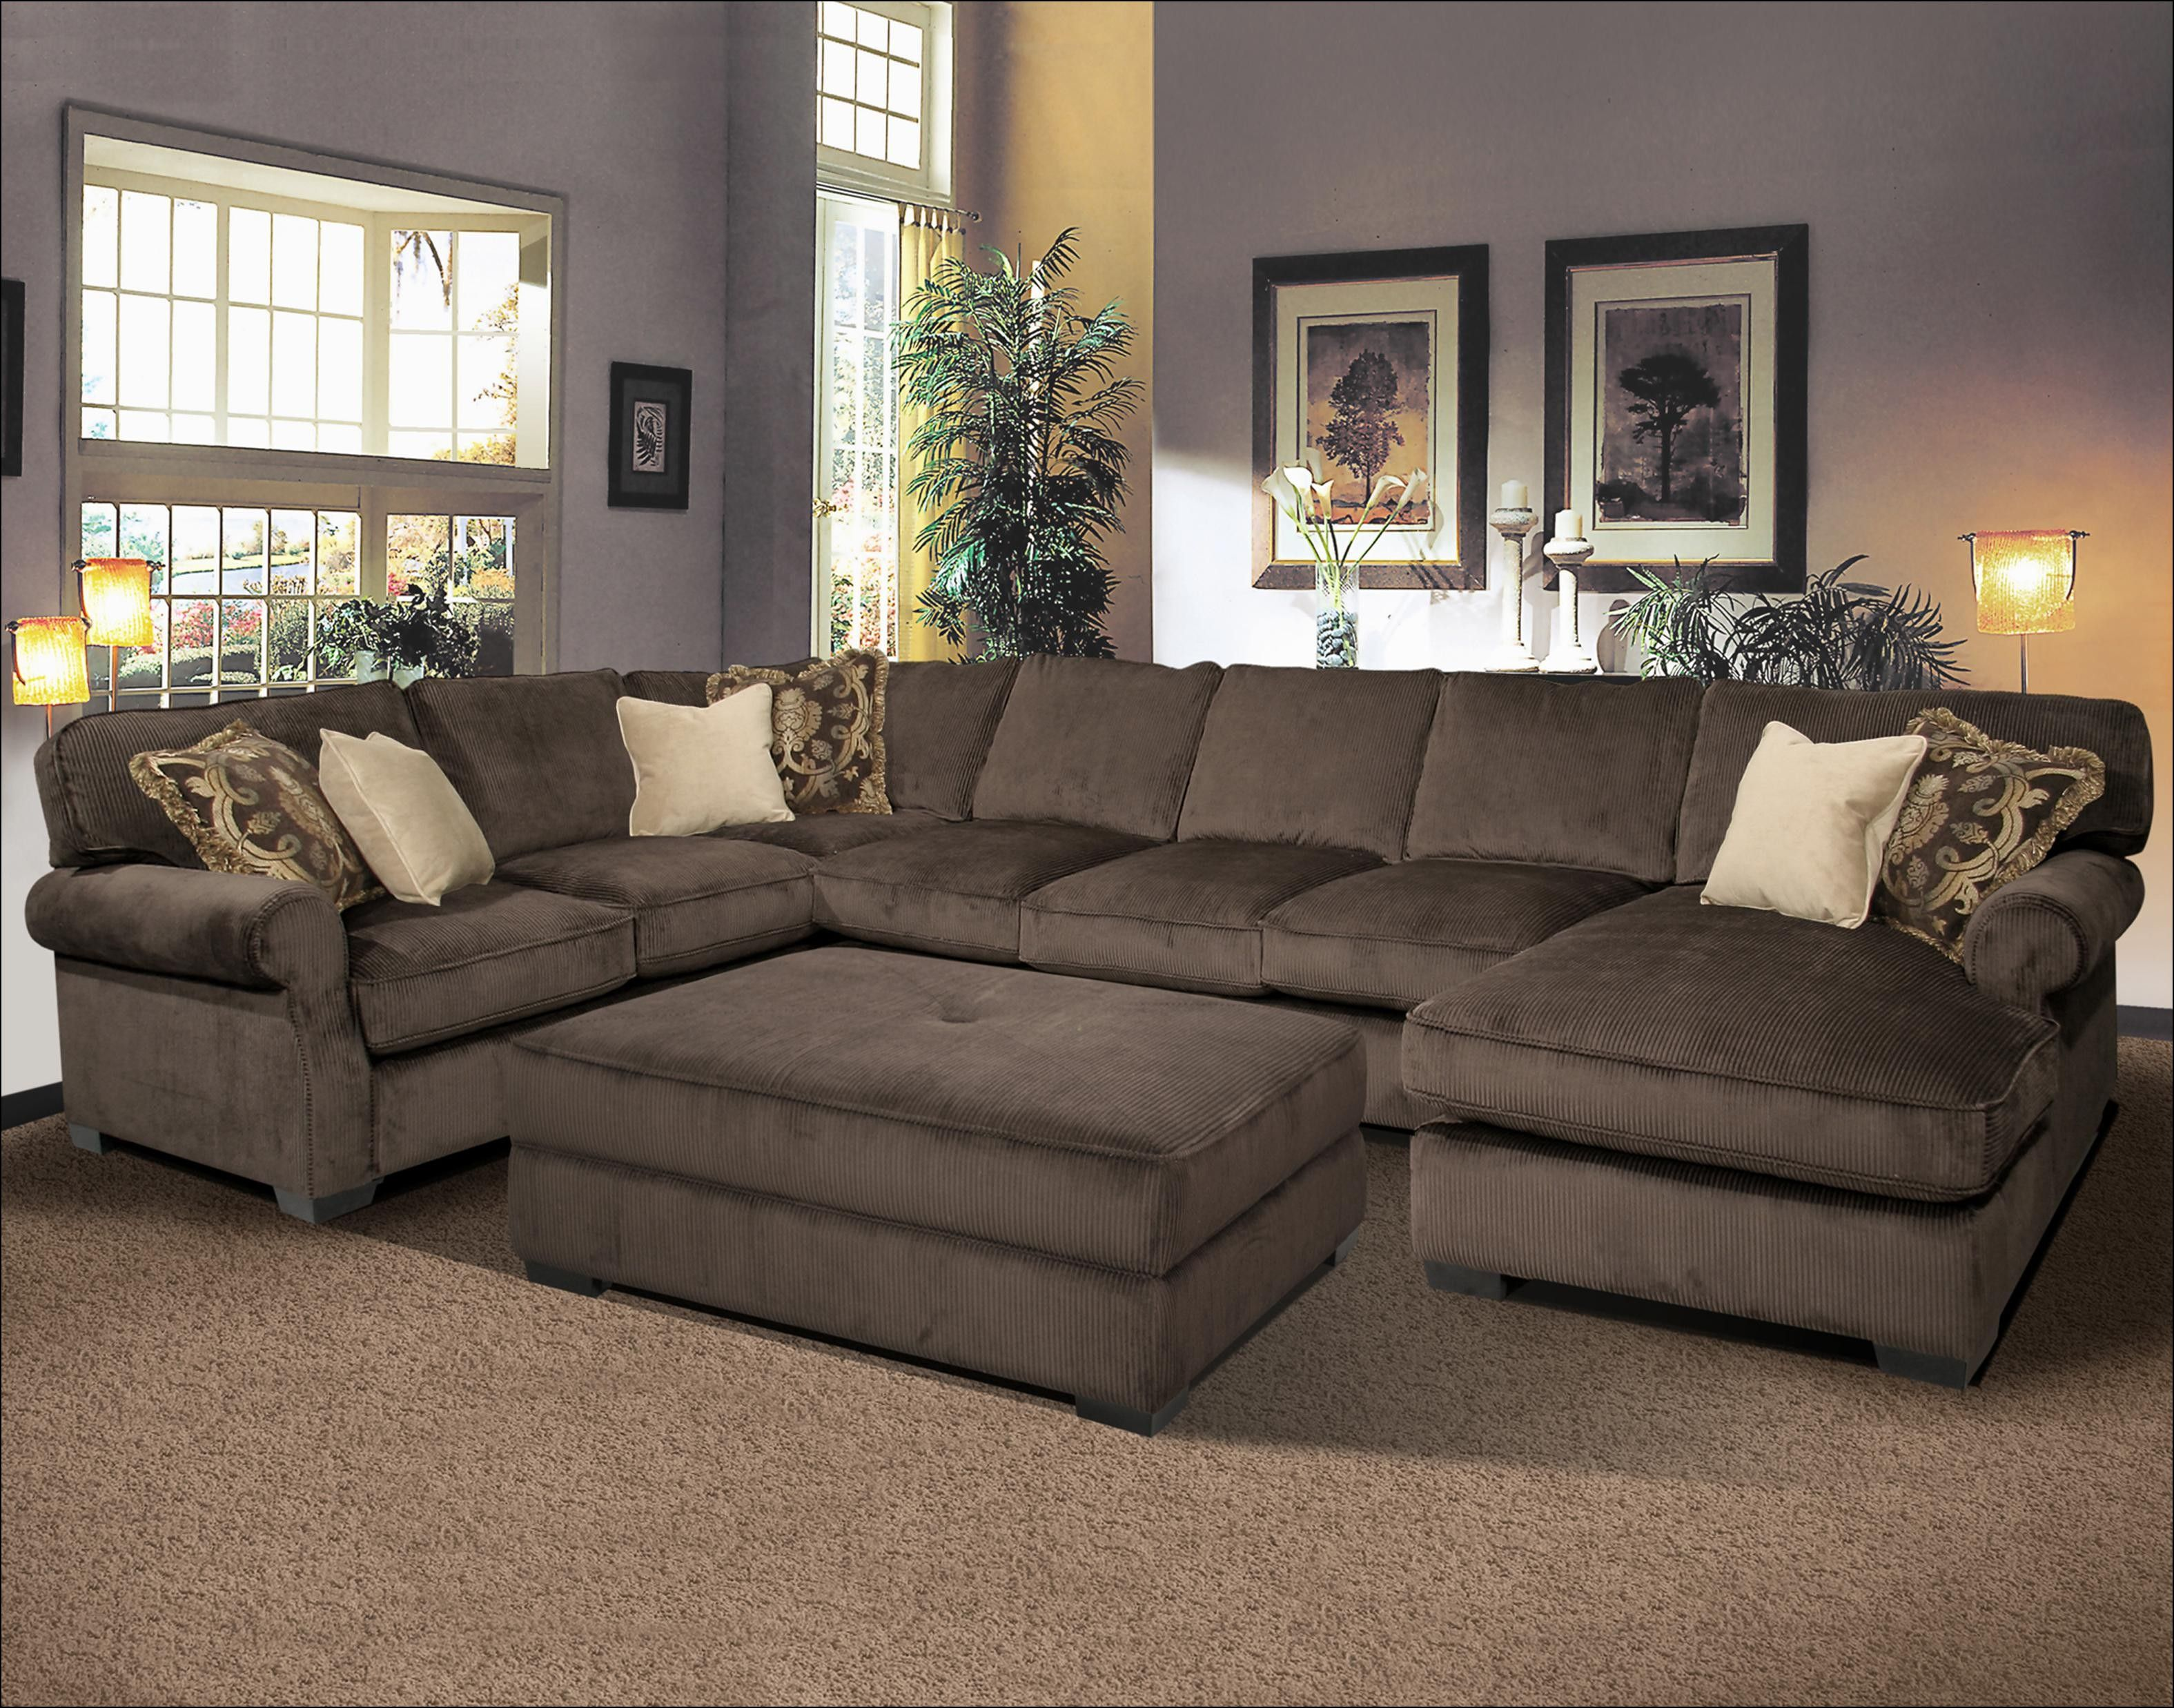 Comfortable Couches With Images